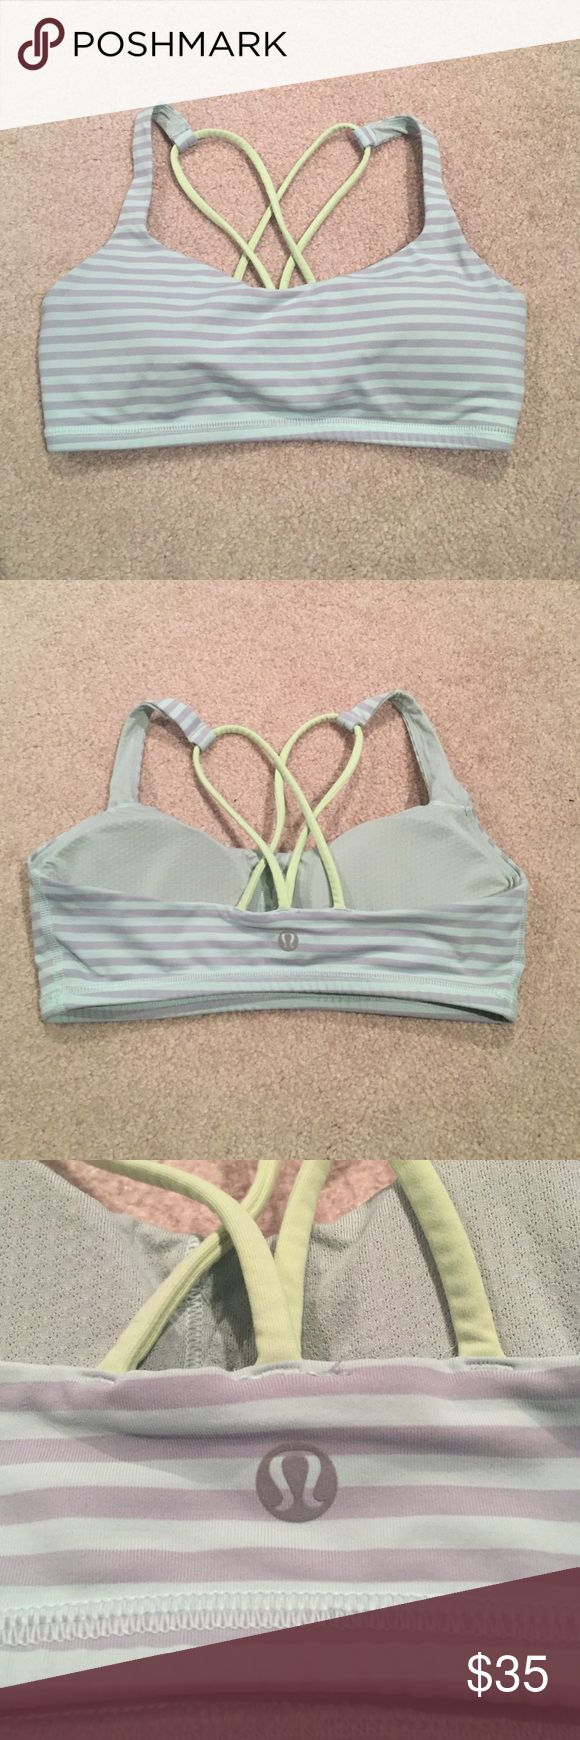 *REDUCED* Lululemon Free to Be Sports Bra This cute sports bra is NWOT as it was never worn and is in perfect condition! lululemon athletica Intimates & Sleepwear Bras